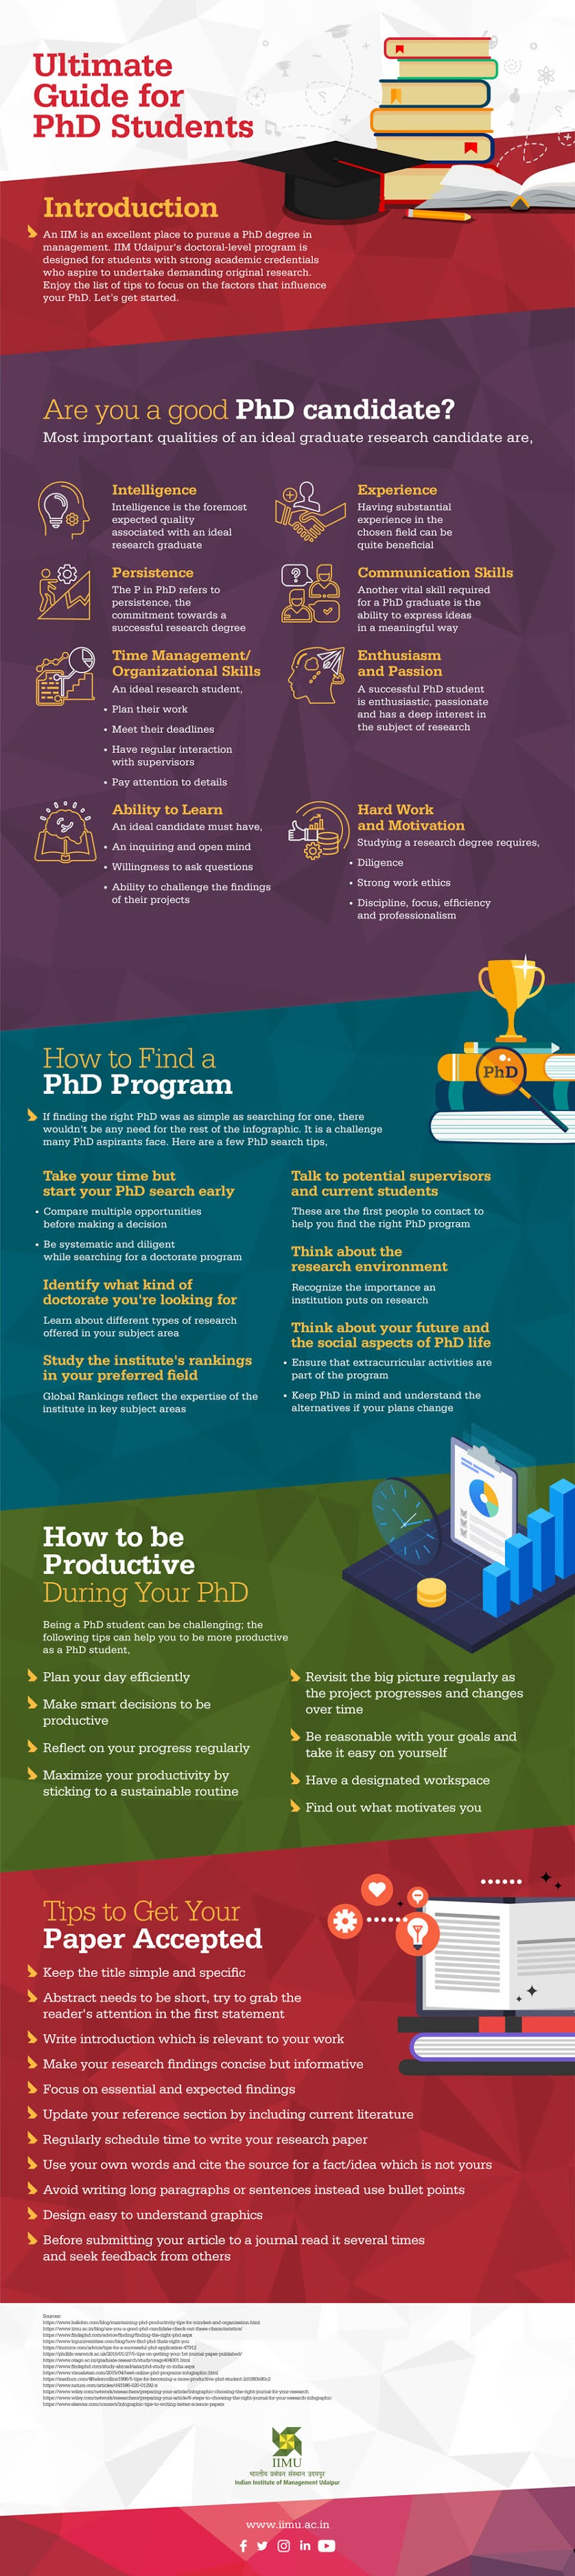 Ultimate Guide for PhD Students #infographic #Education #PhD Students